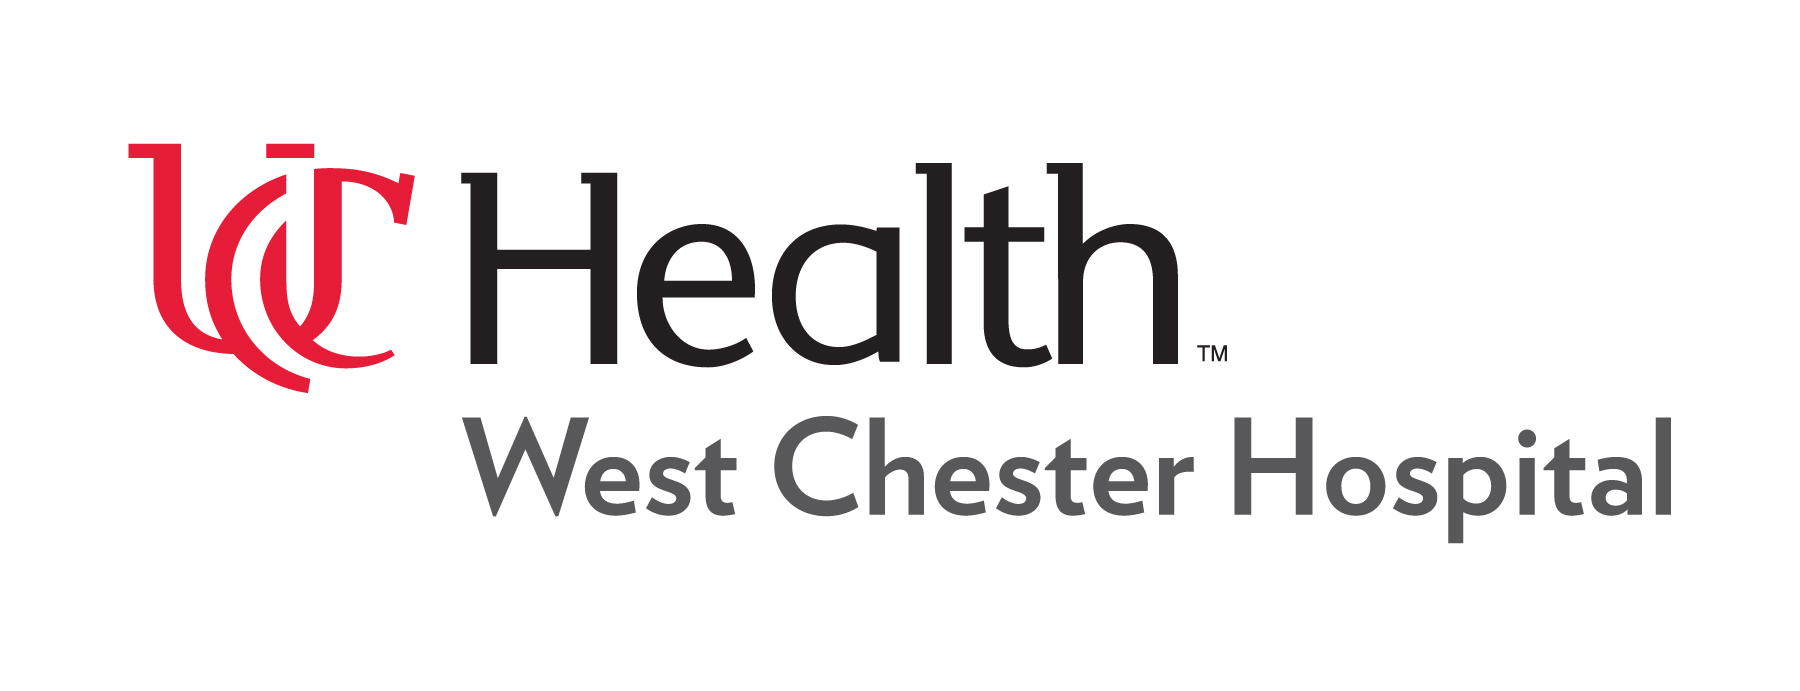 UC Health West Chester Hospital logo